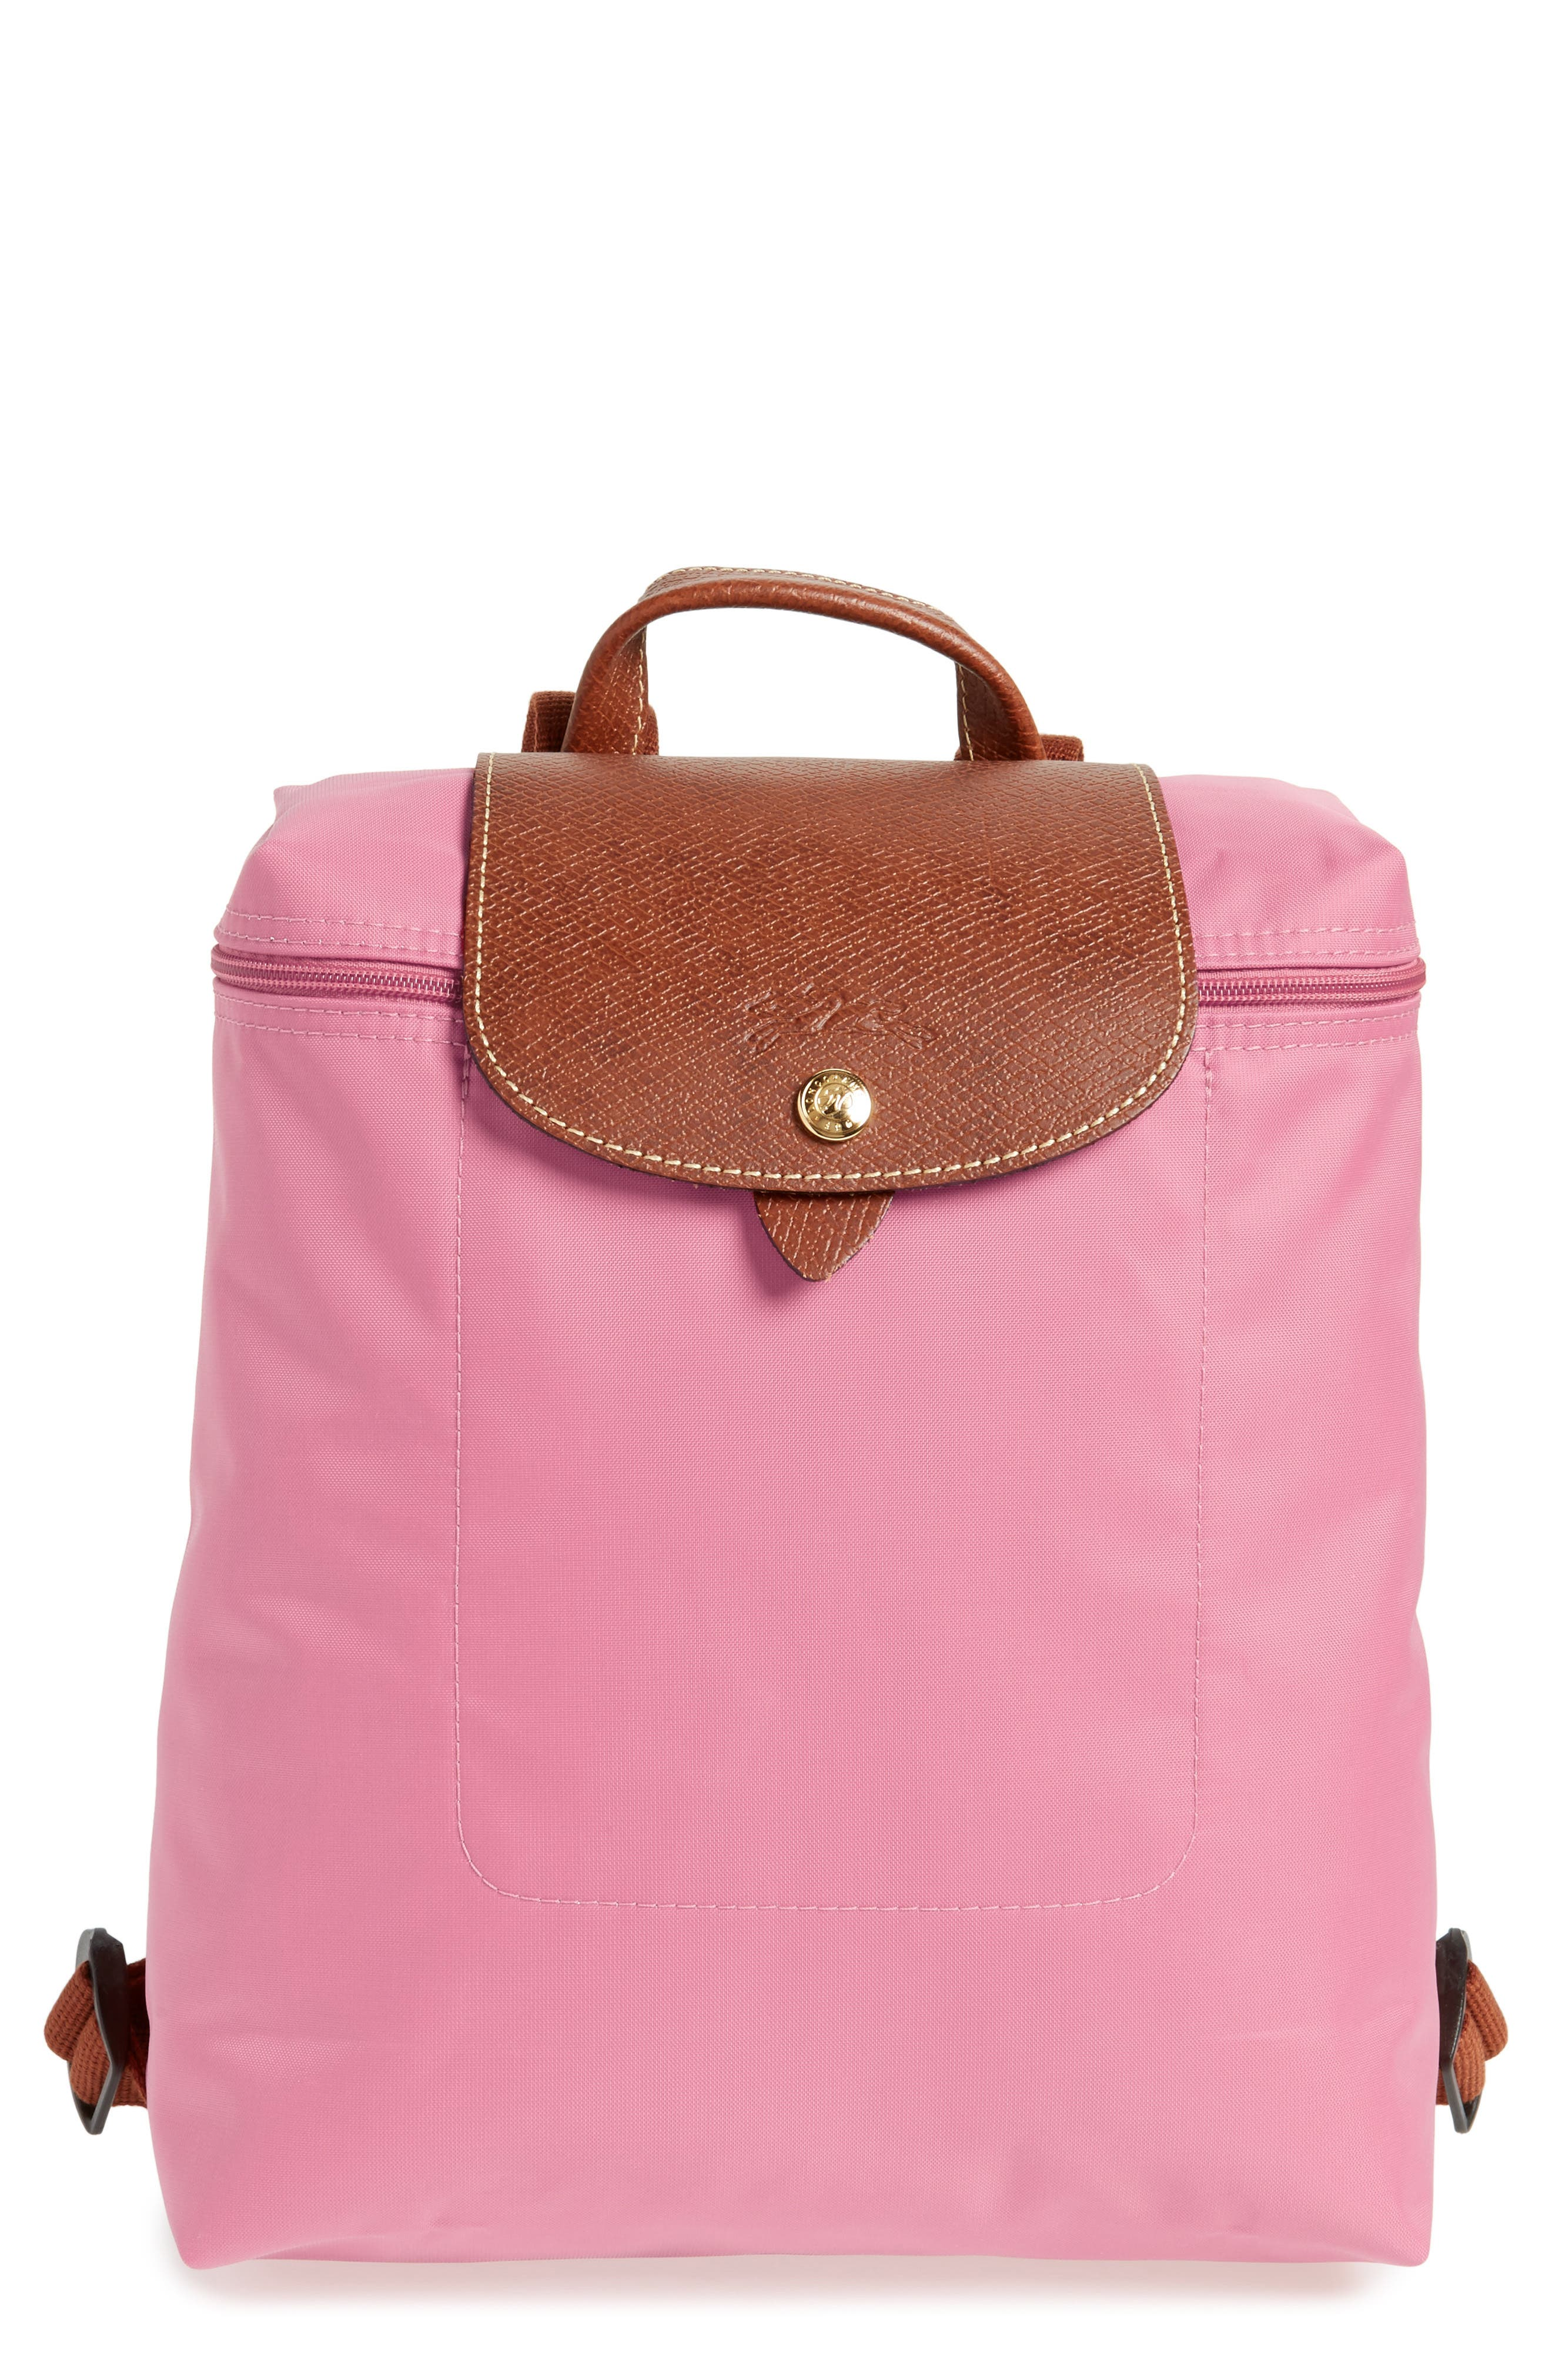 Longchamp \u0027Le Pliage\u0027 Backpack